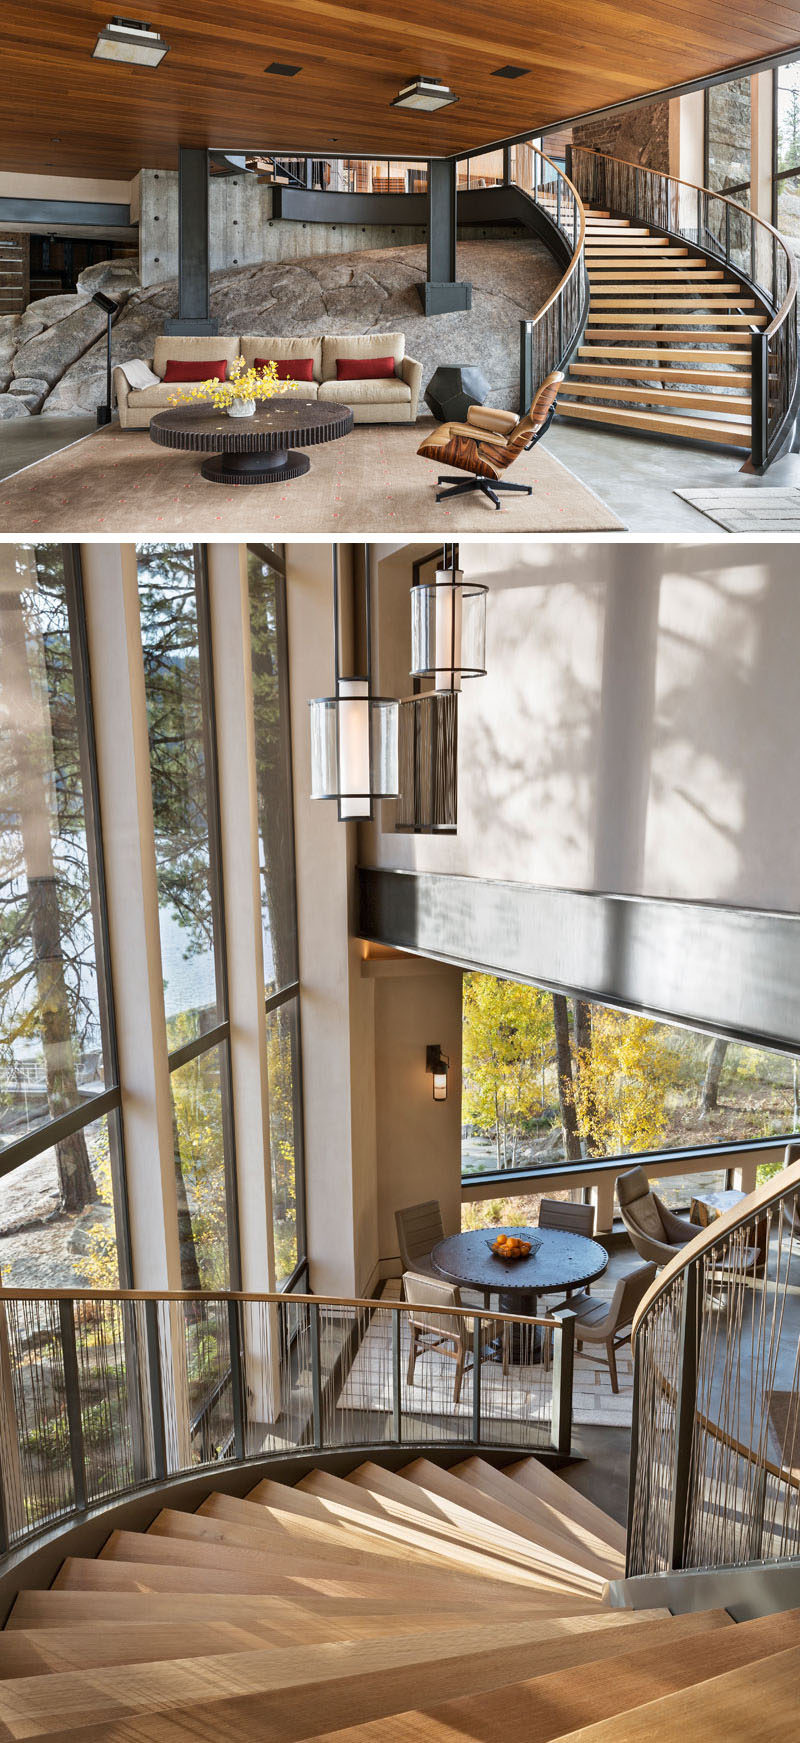 This circular staircase has been made from bent I-beams and wood, and leads from the main floor of the home down to the game room, that shows off a major piece of the natural bedrock from the site. #Stairs #SteelStairs #InteriorDesign